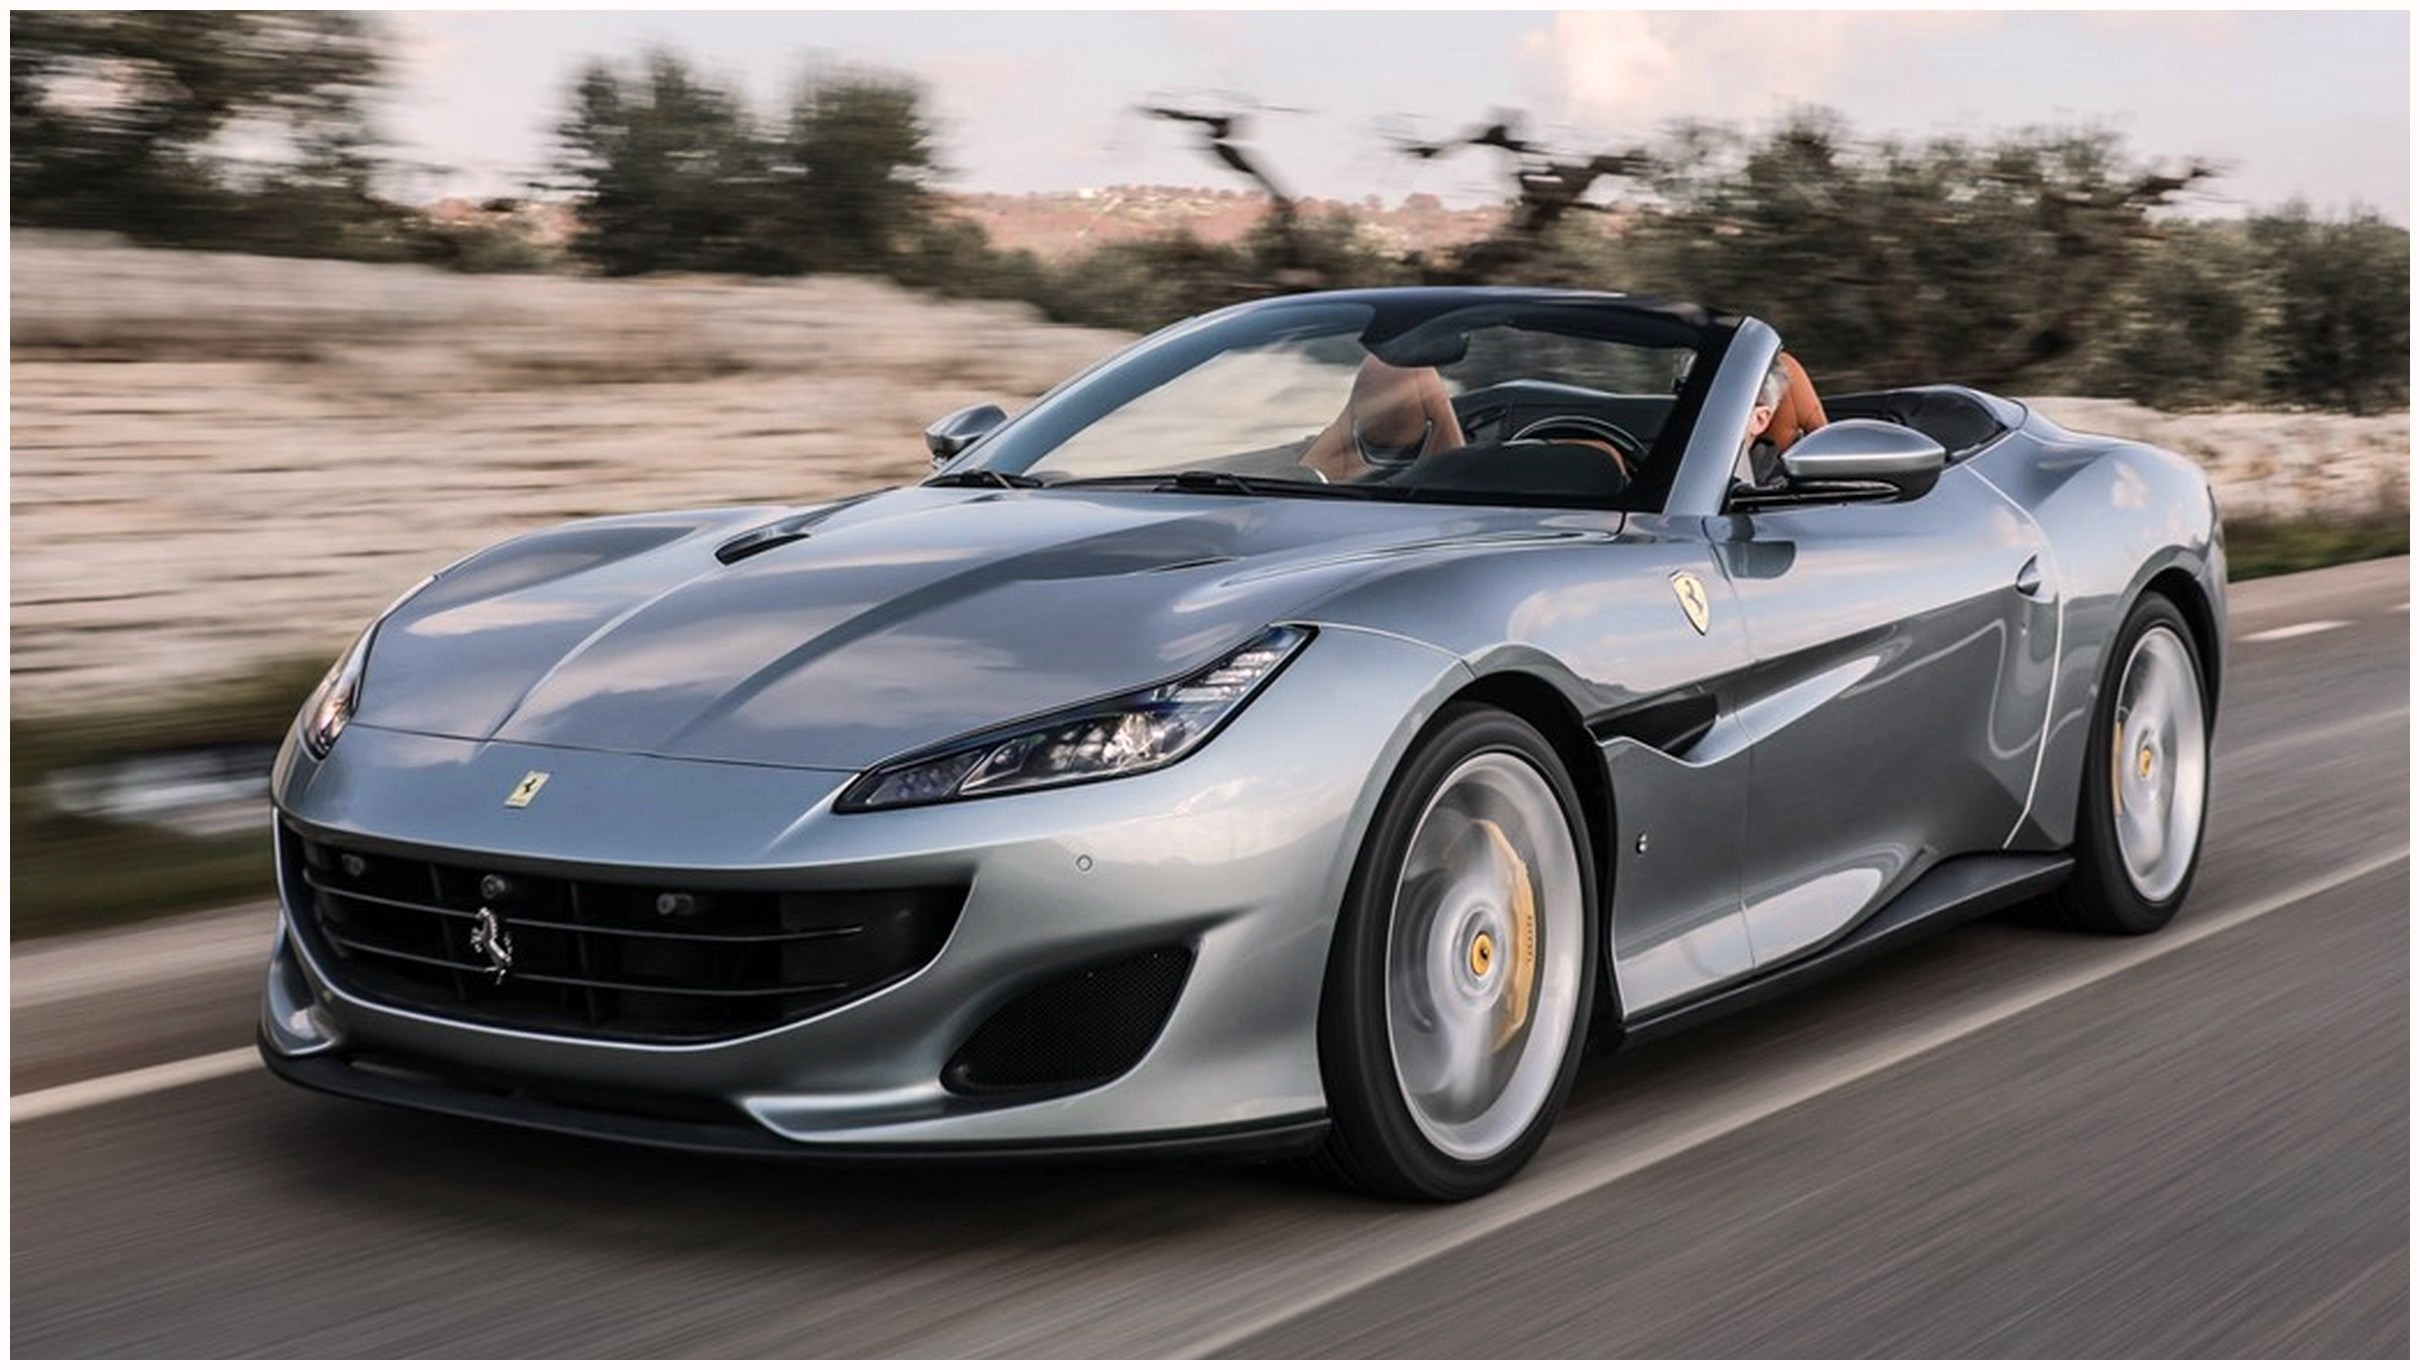 Ferrari Portofino HD wallpapers 4k images download free